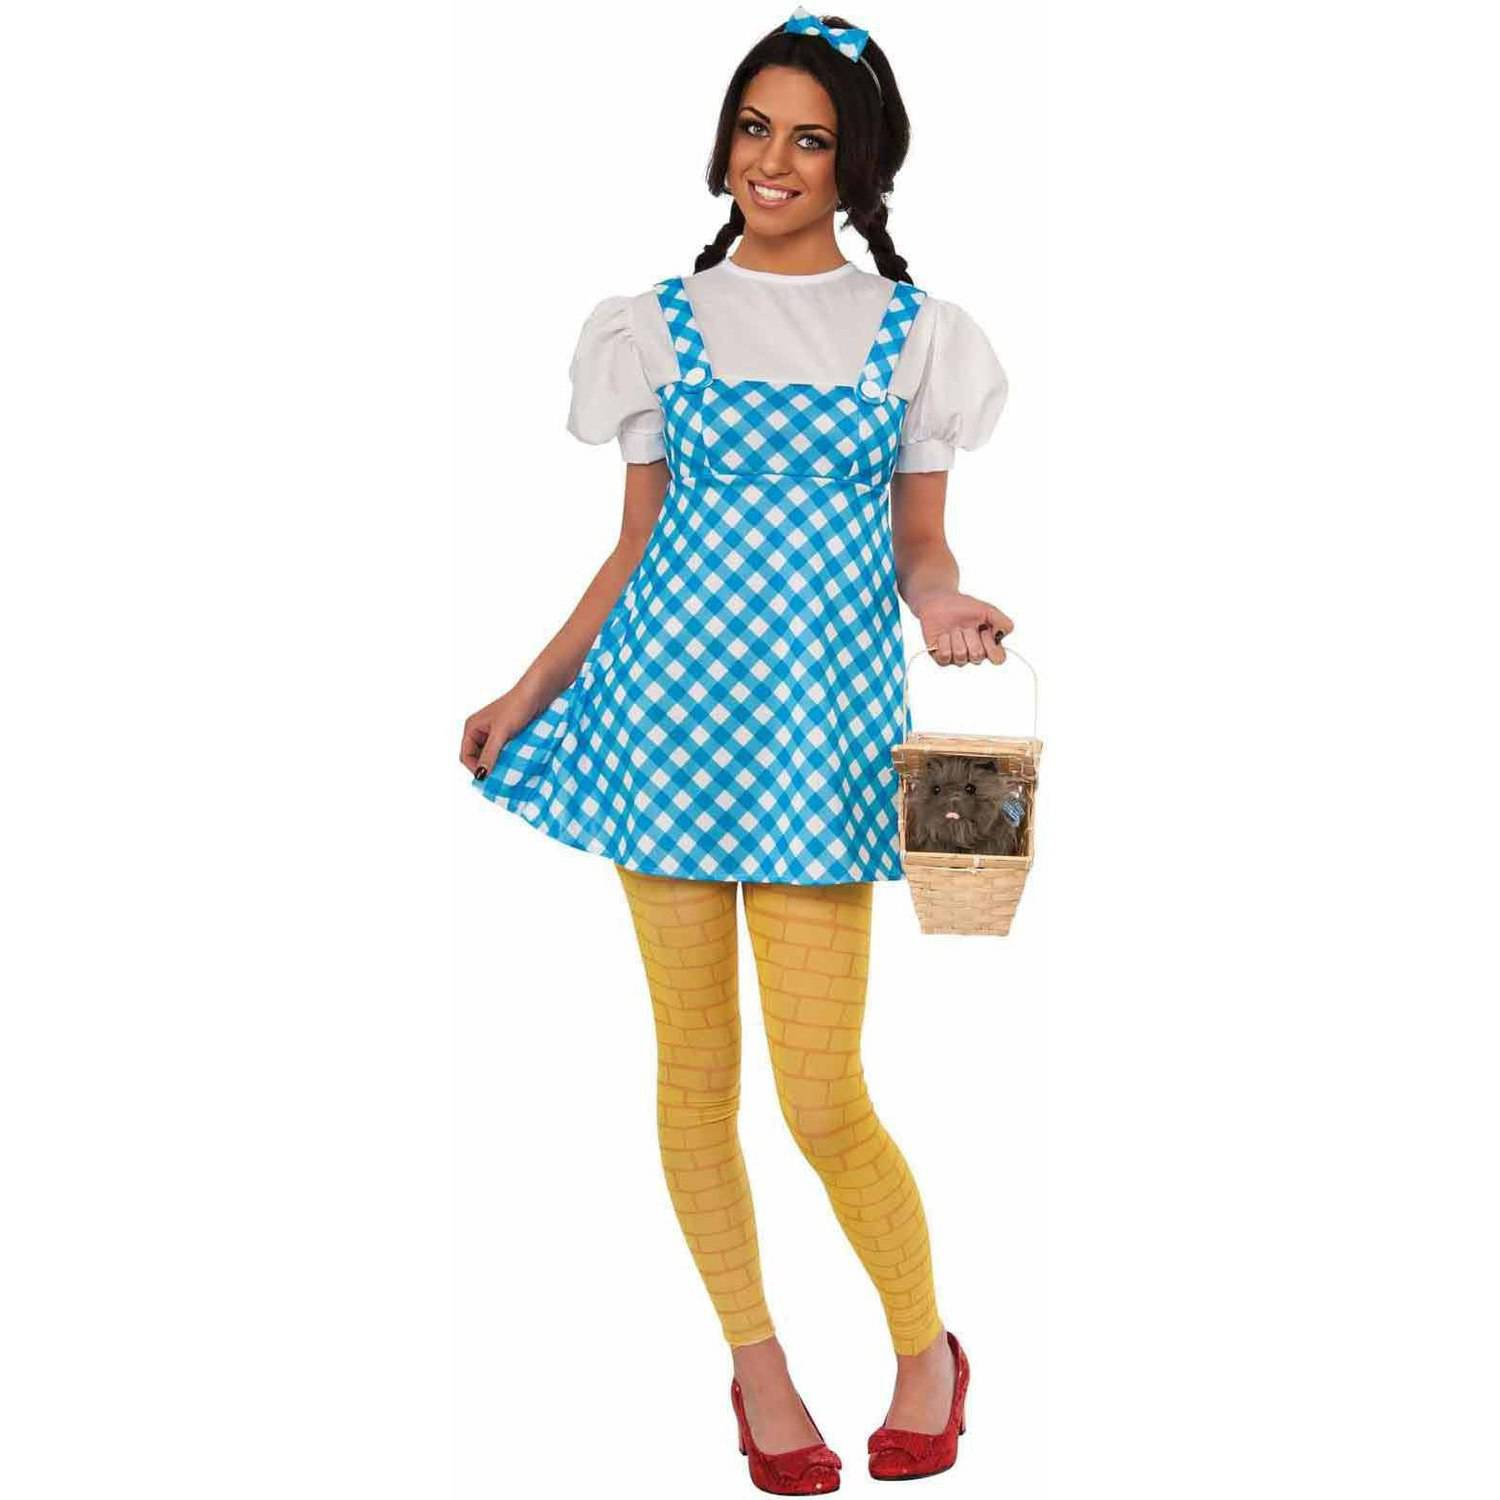 Wizard Of Oz Young Adult Dorothy Dress Womenu0027s Adult Halloween Costume - Walmart.com  sc 1 st  Walmart & Wizard Of Oz Young Adult Dorothy Dress Womenu0027s Adult Halloween ...